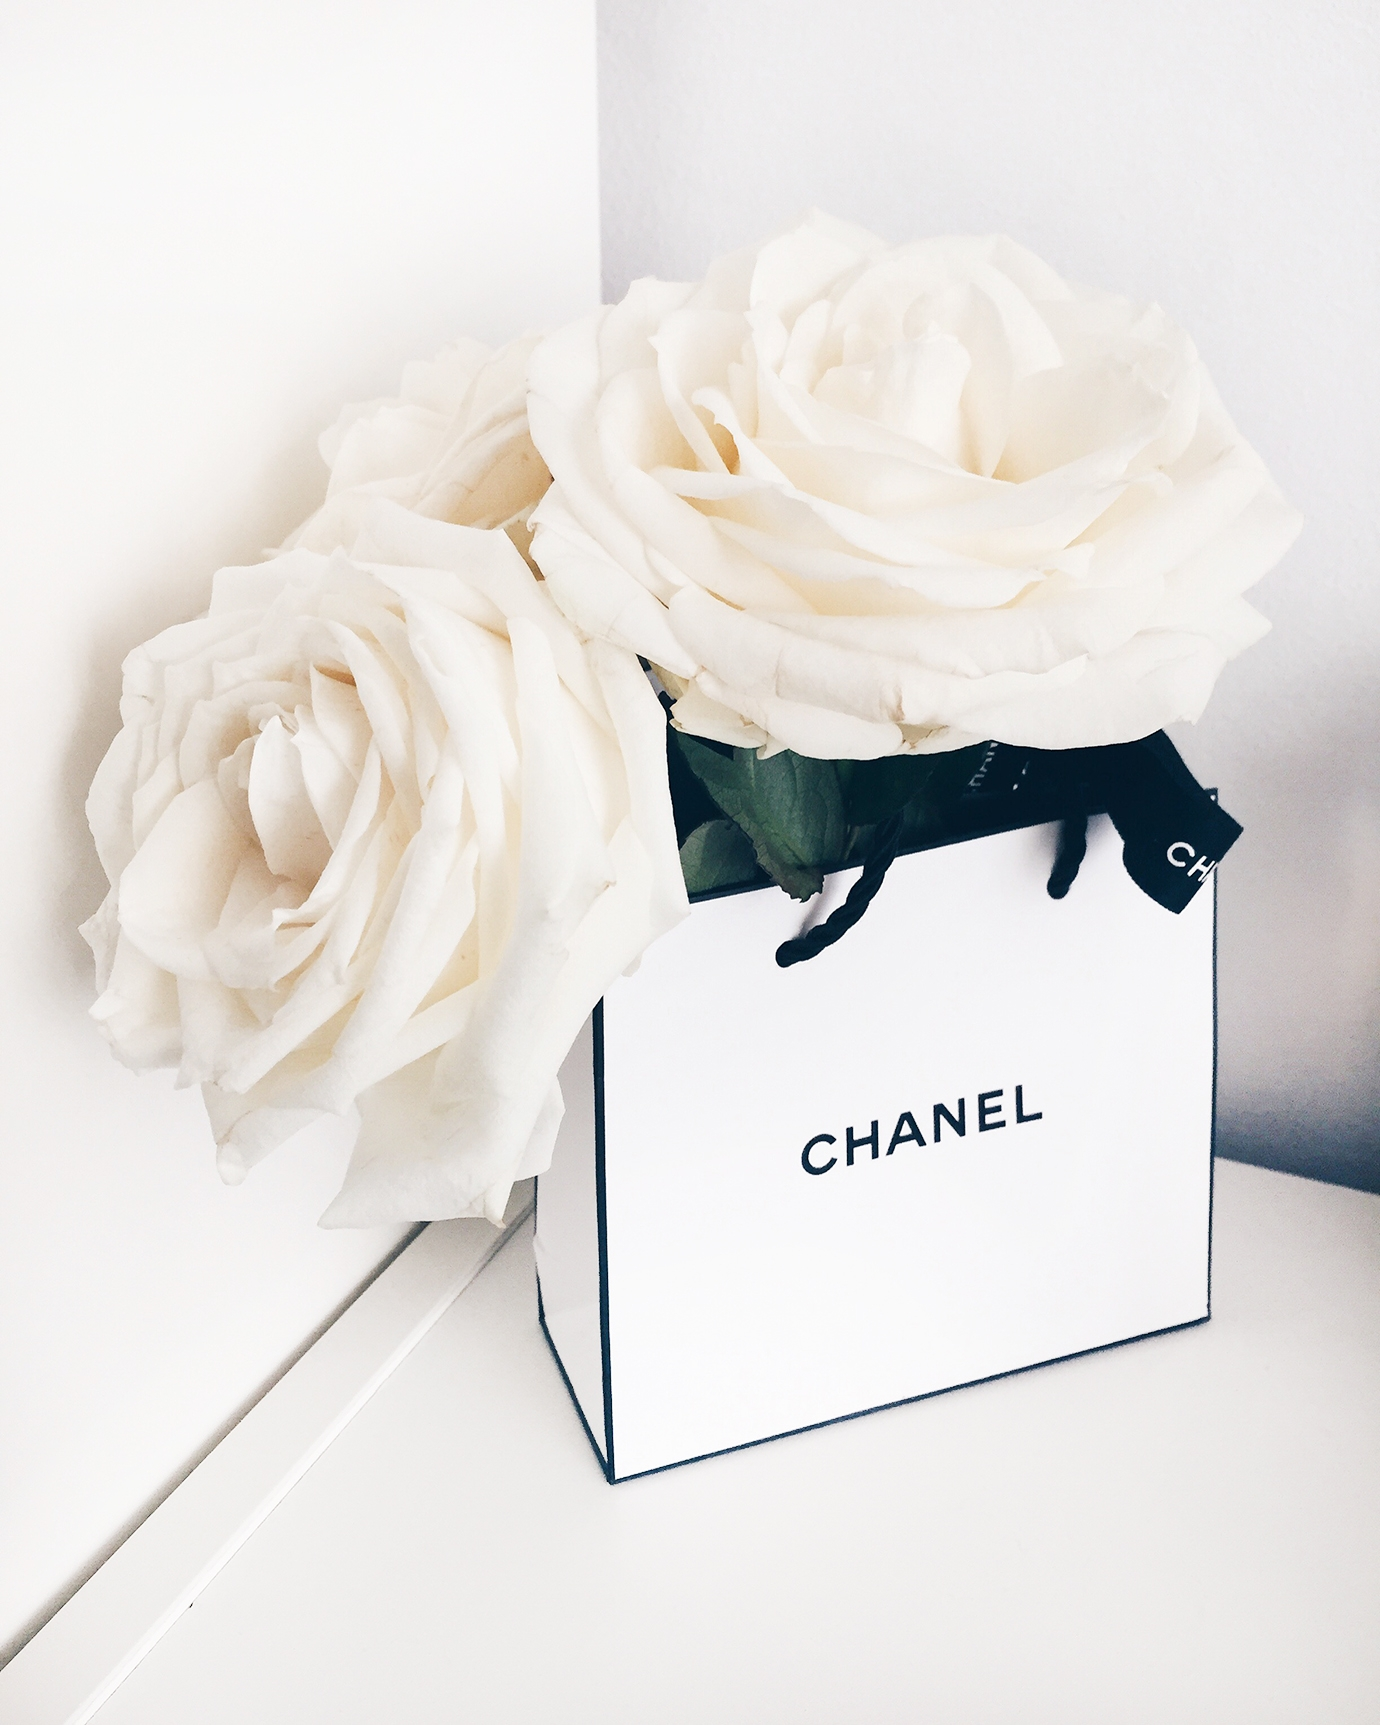 7things_4_chanel